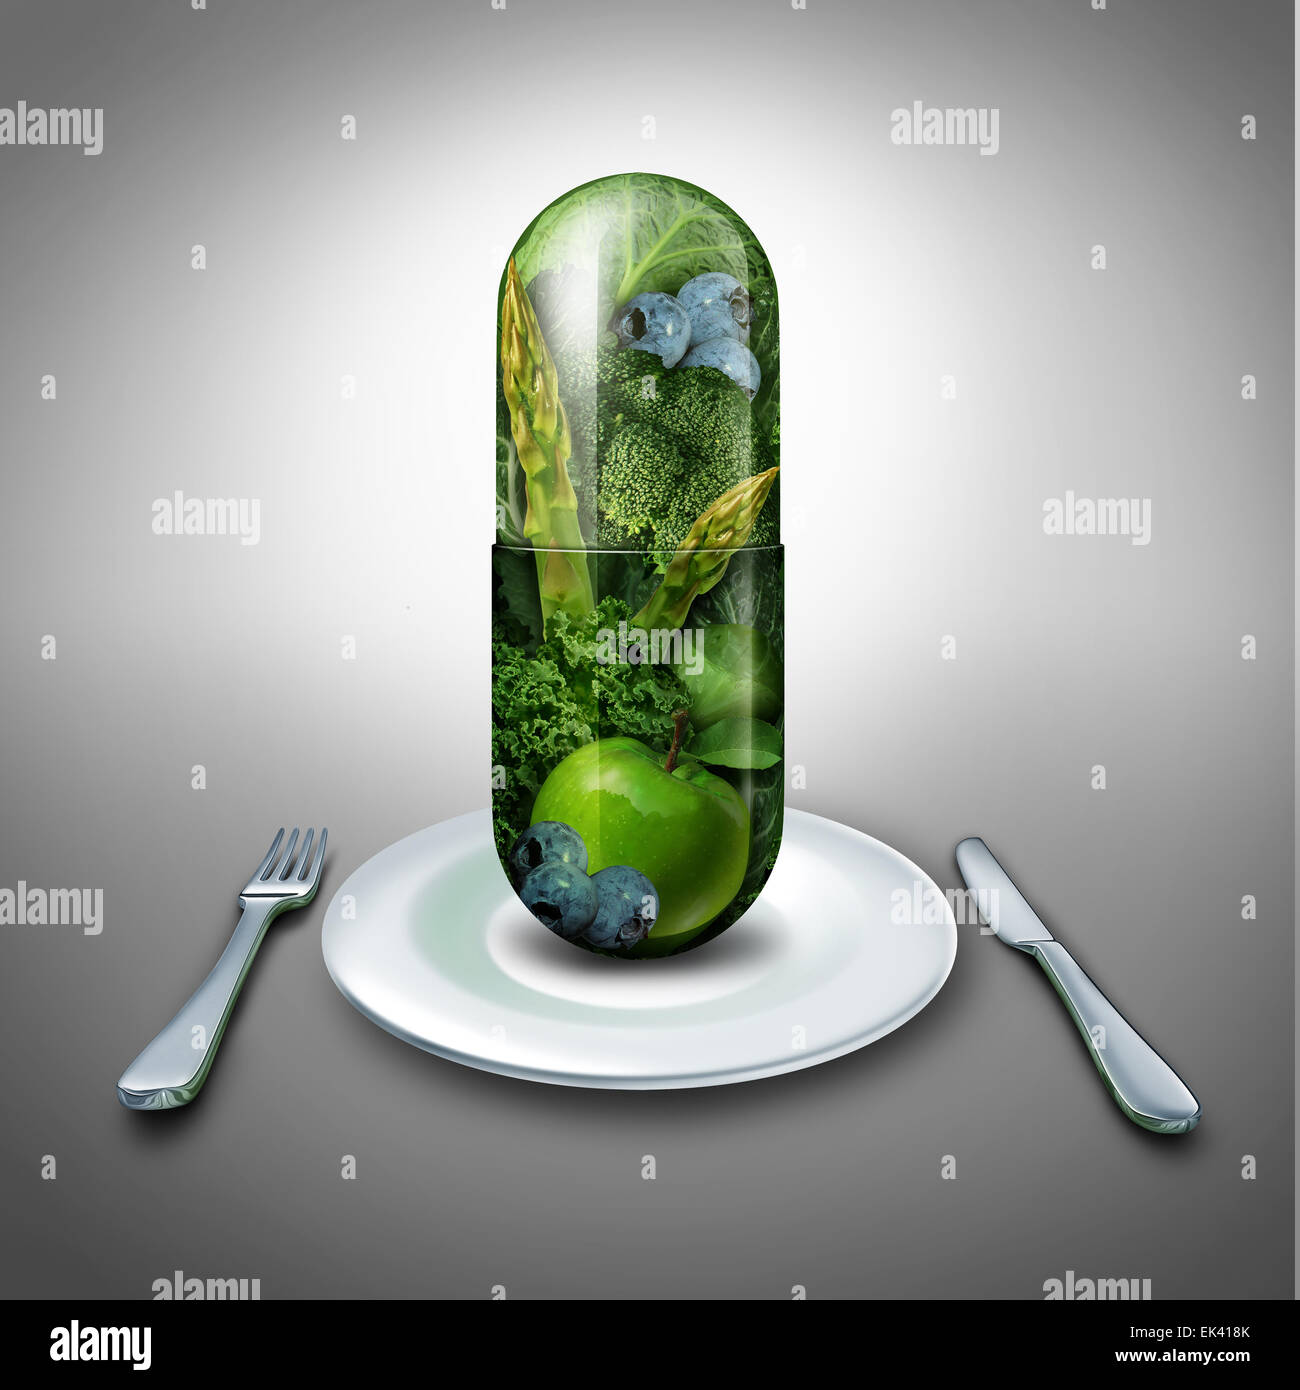 Food supplement concept as a giant pill or medicine capsule with fresh fruit and vegetables inside on a table place - Stock Image